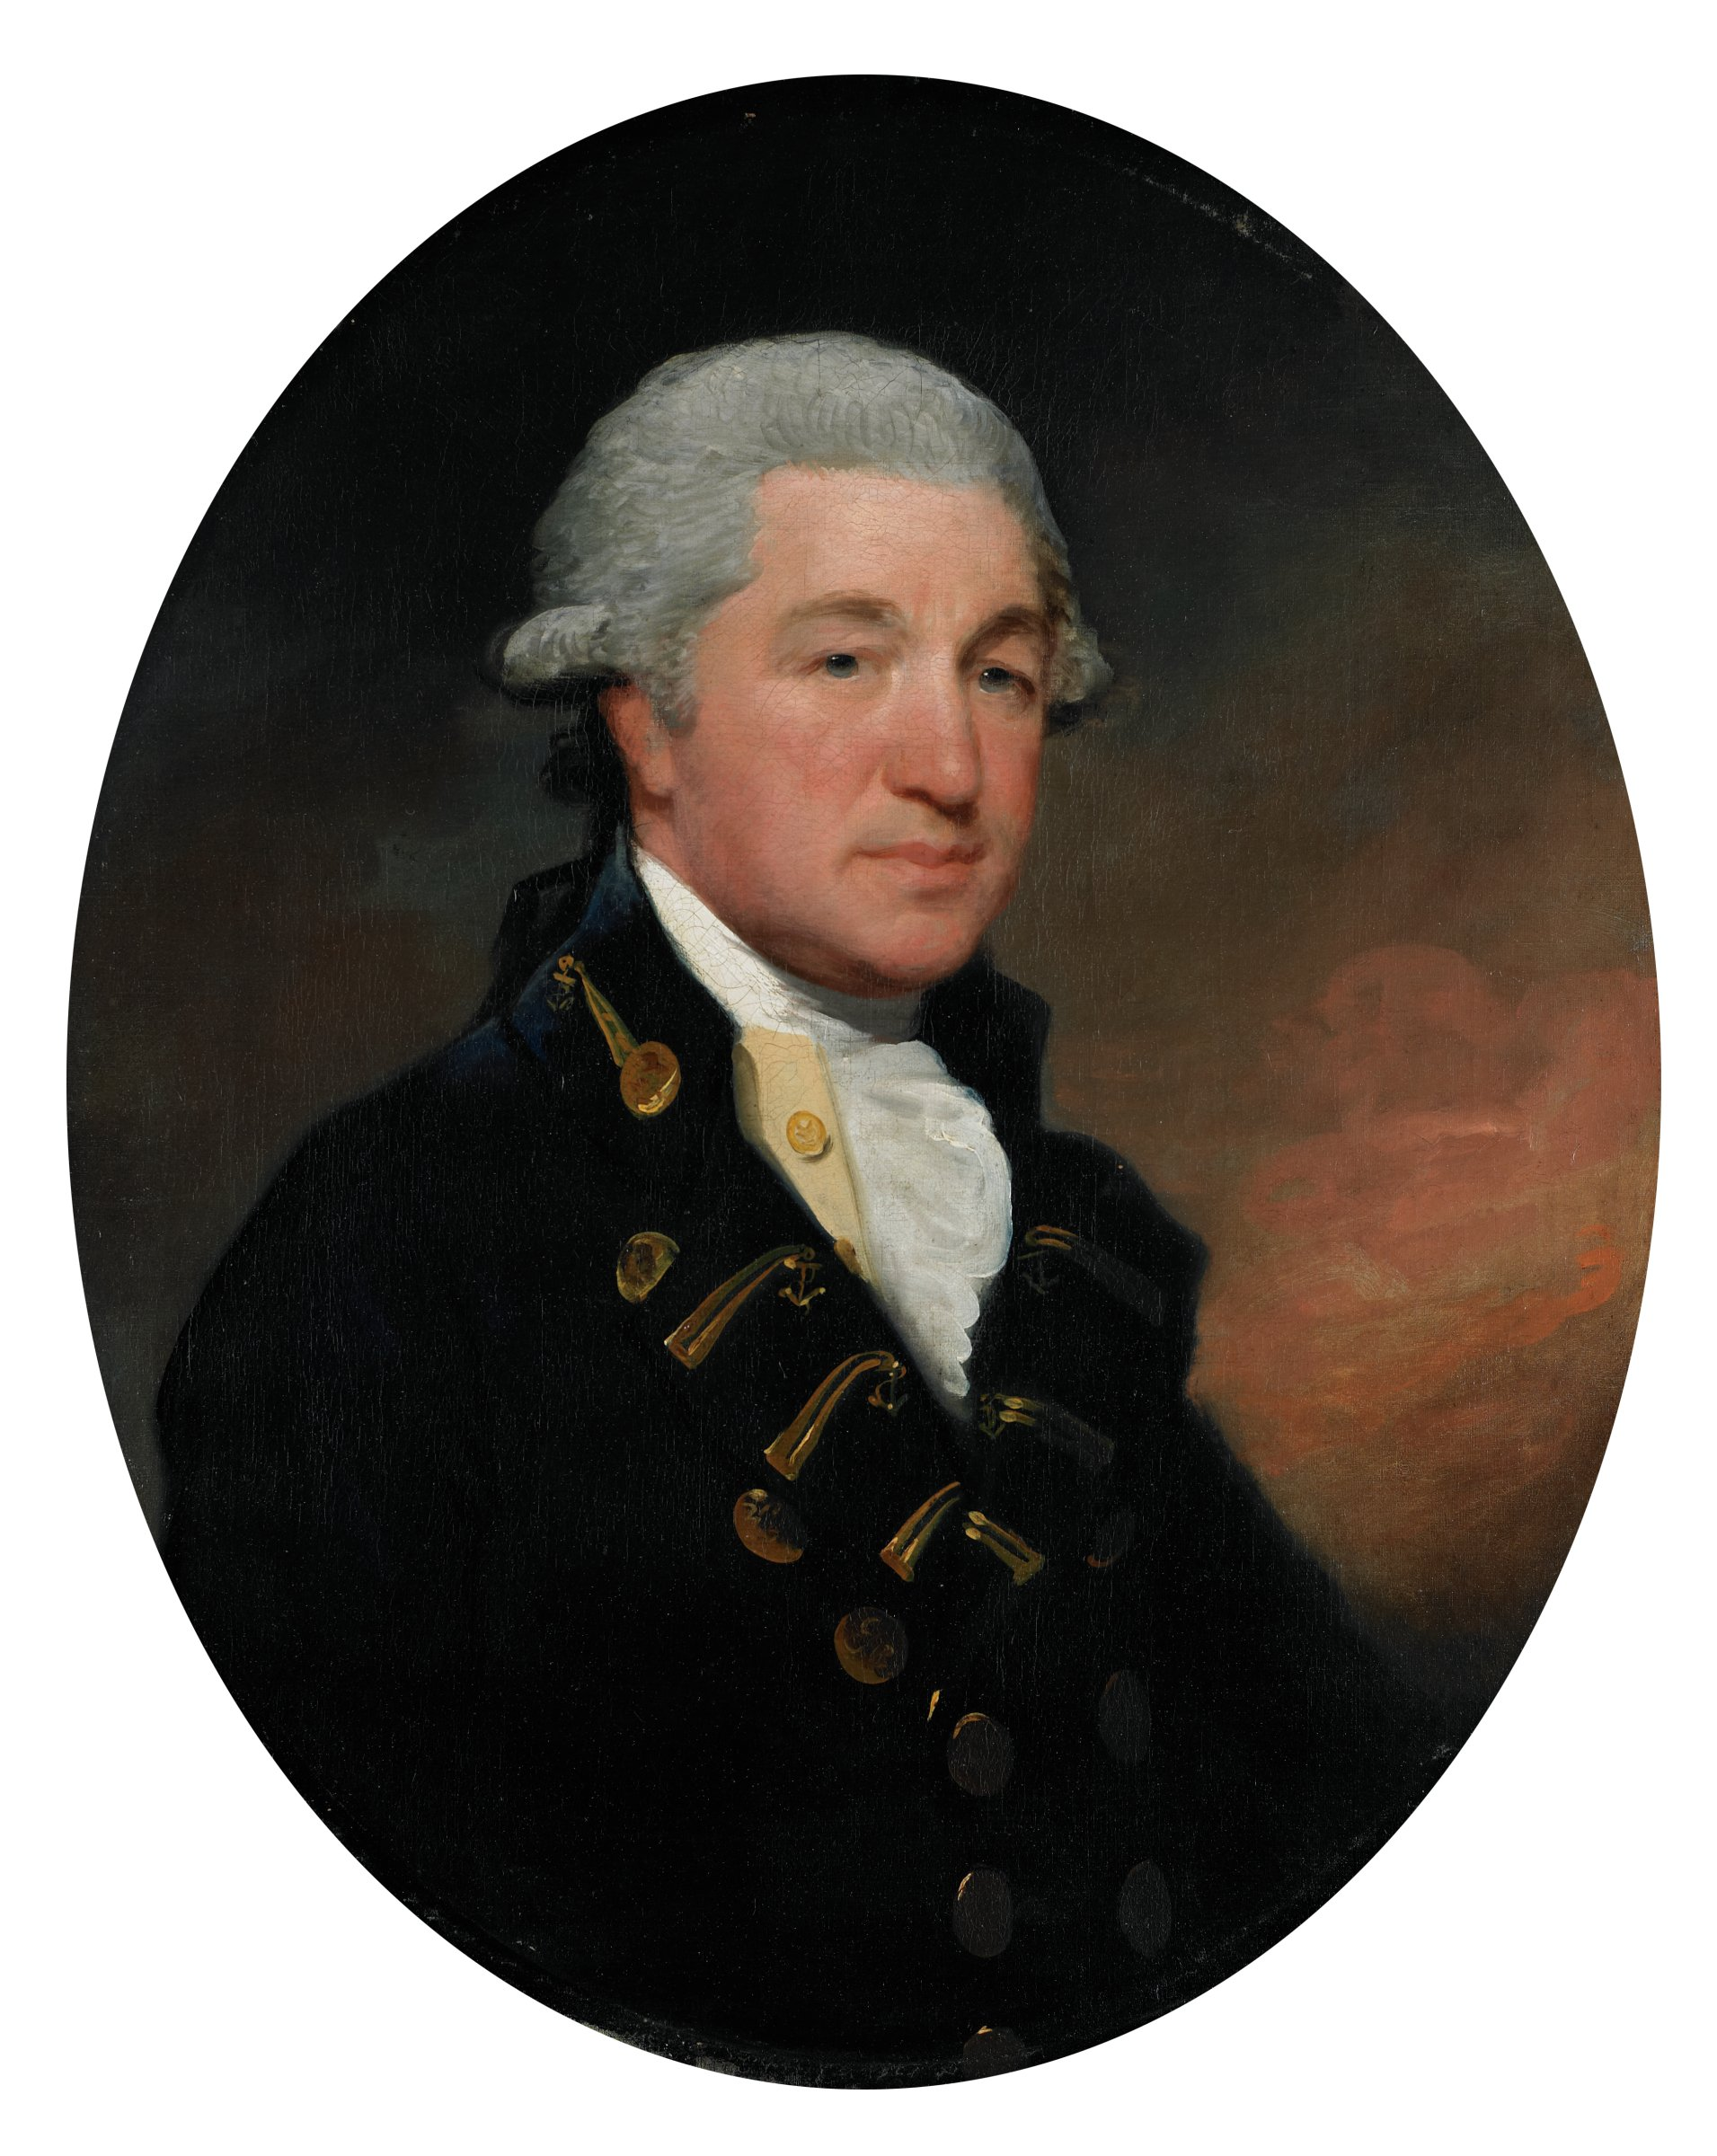 Bust-length portrait of man in white periwig facing right, wearing British naval officer's uniform